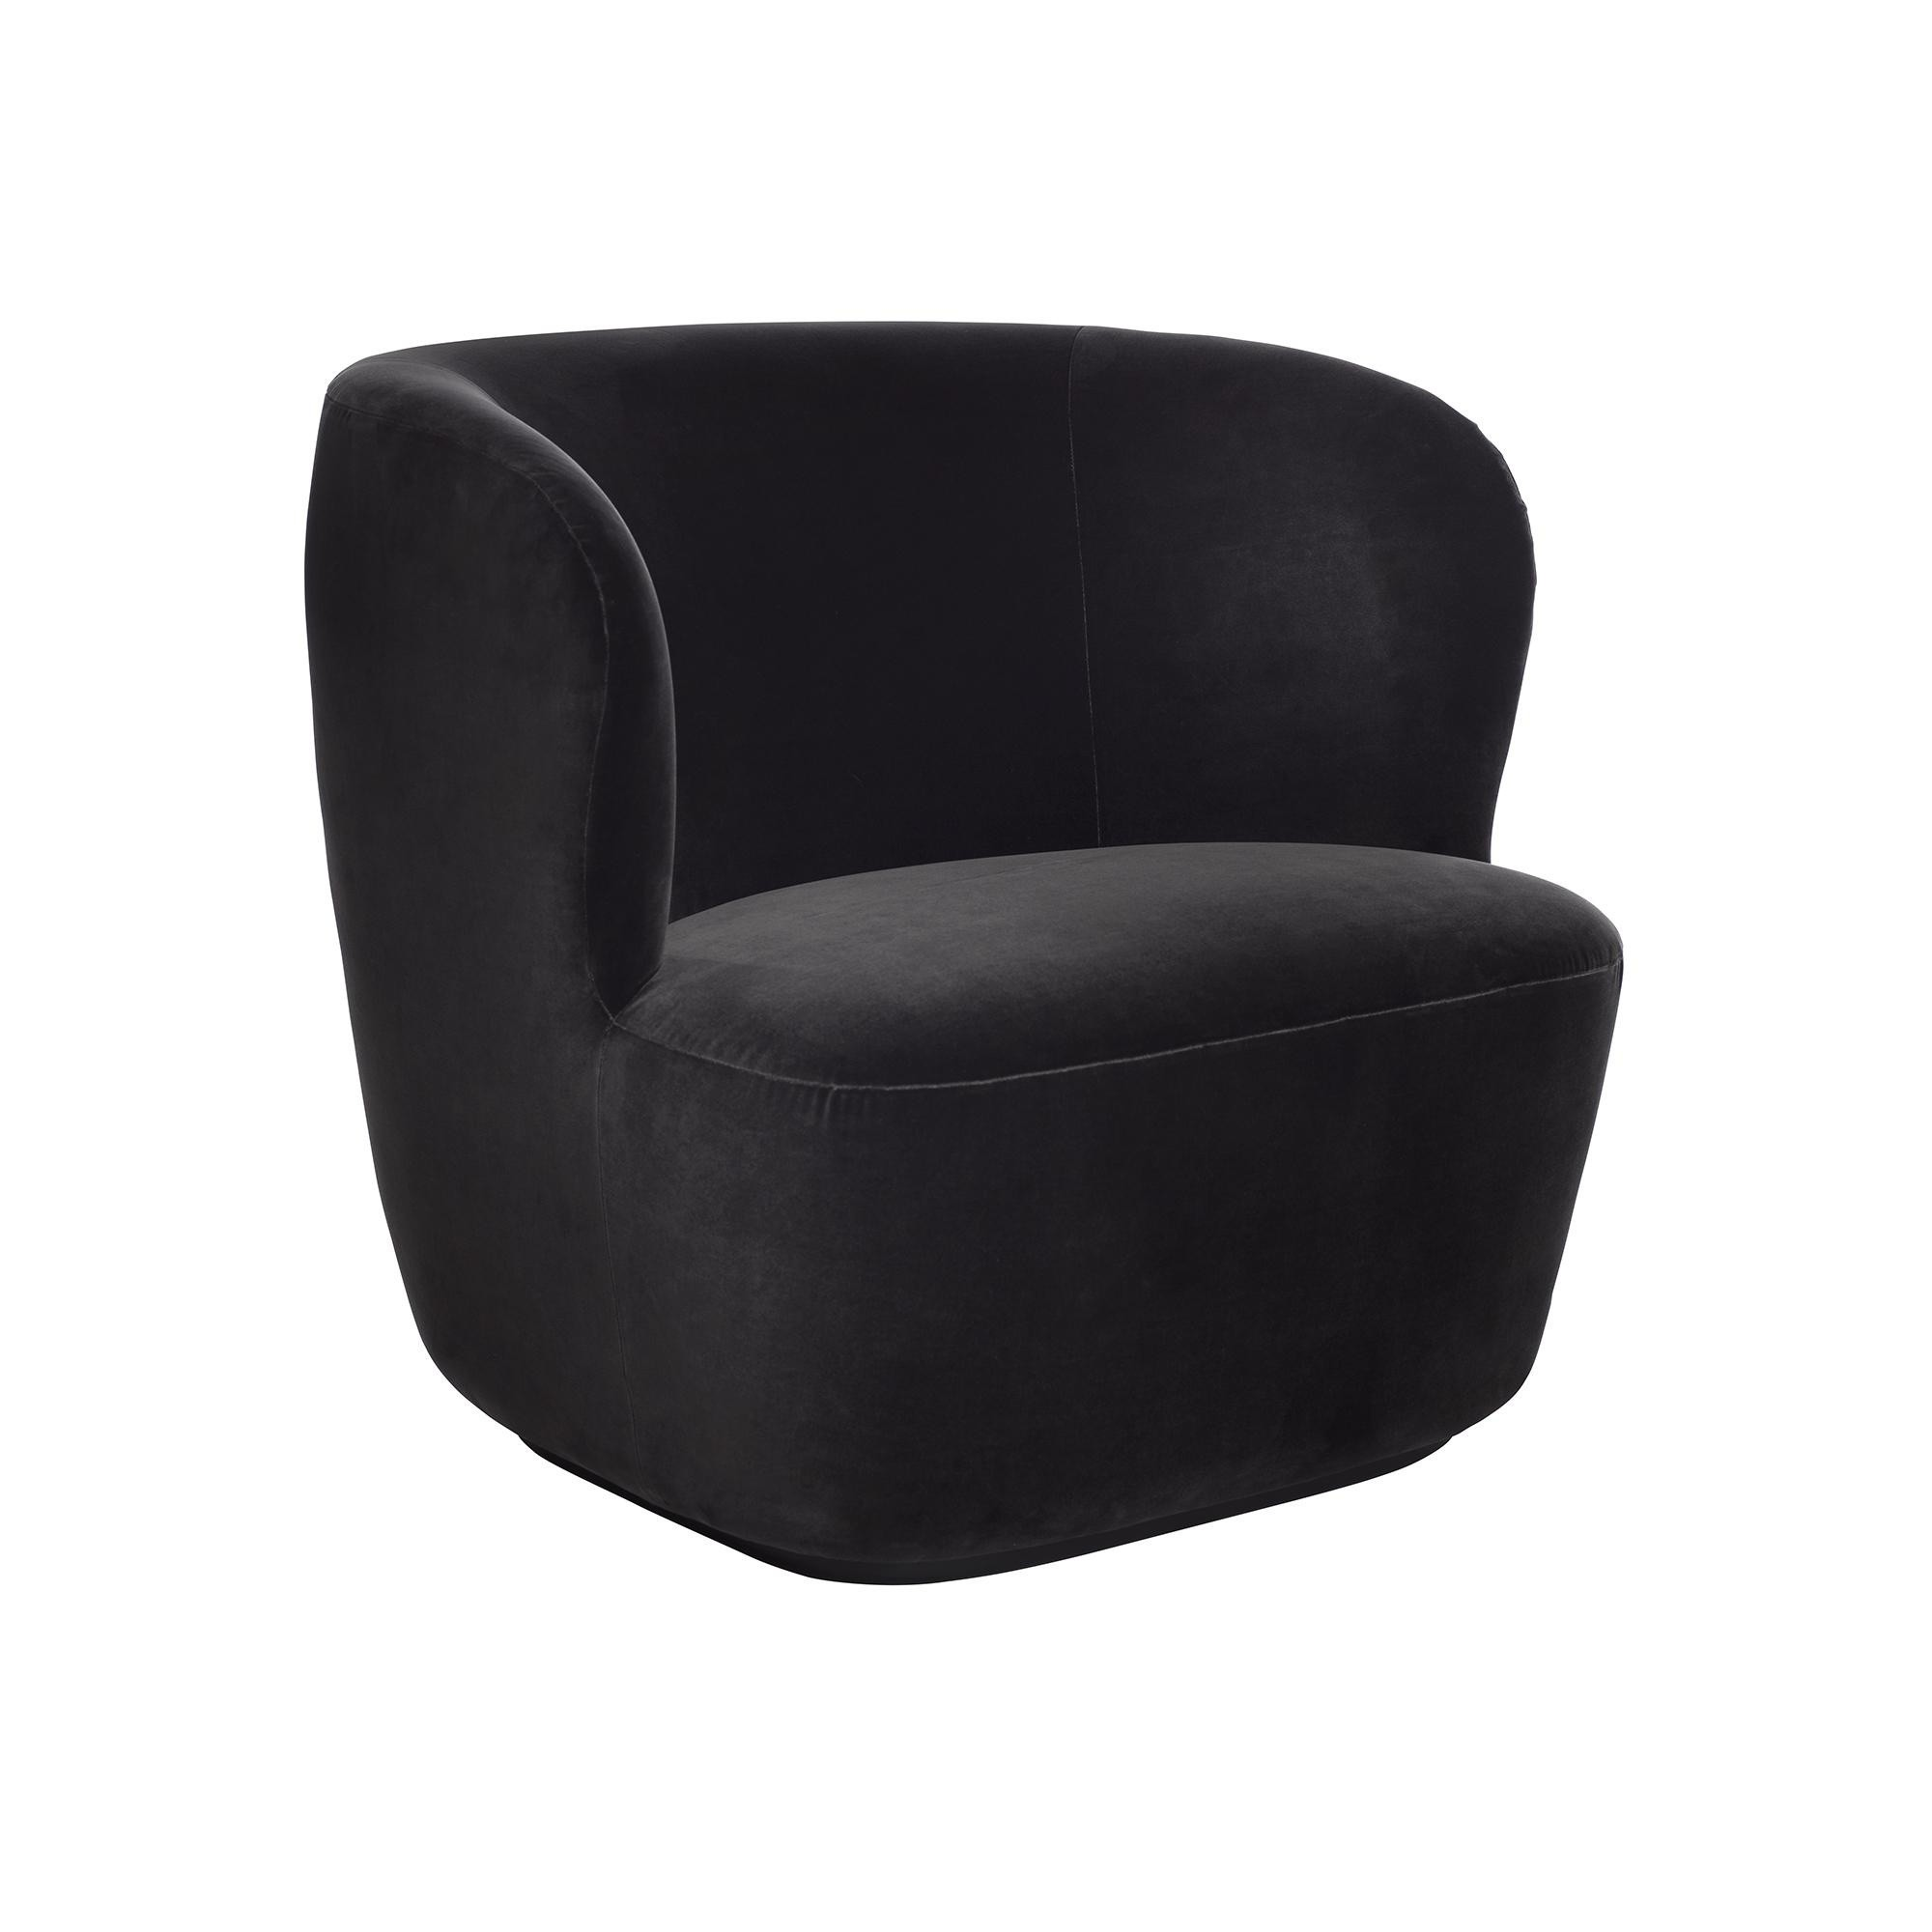 Lounge Sessel Fiberglas Sessel Ball Chair